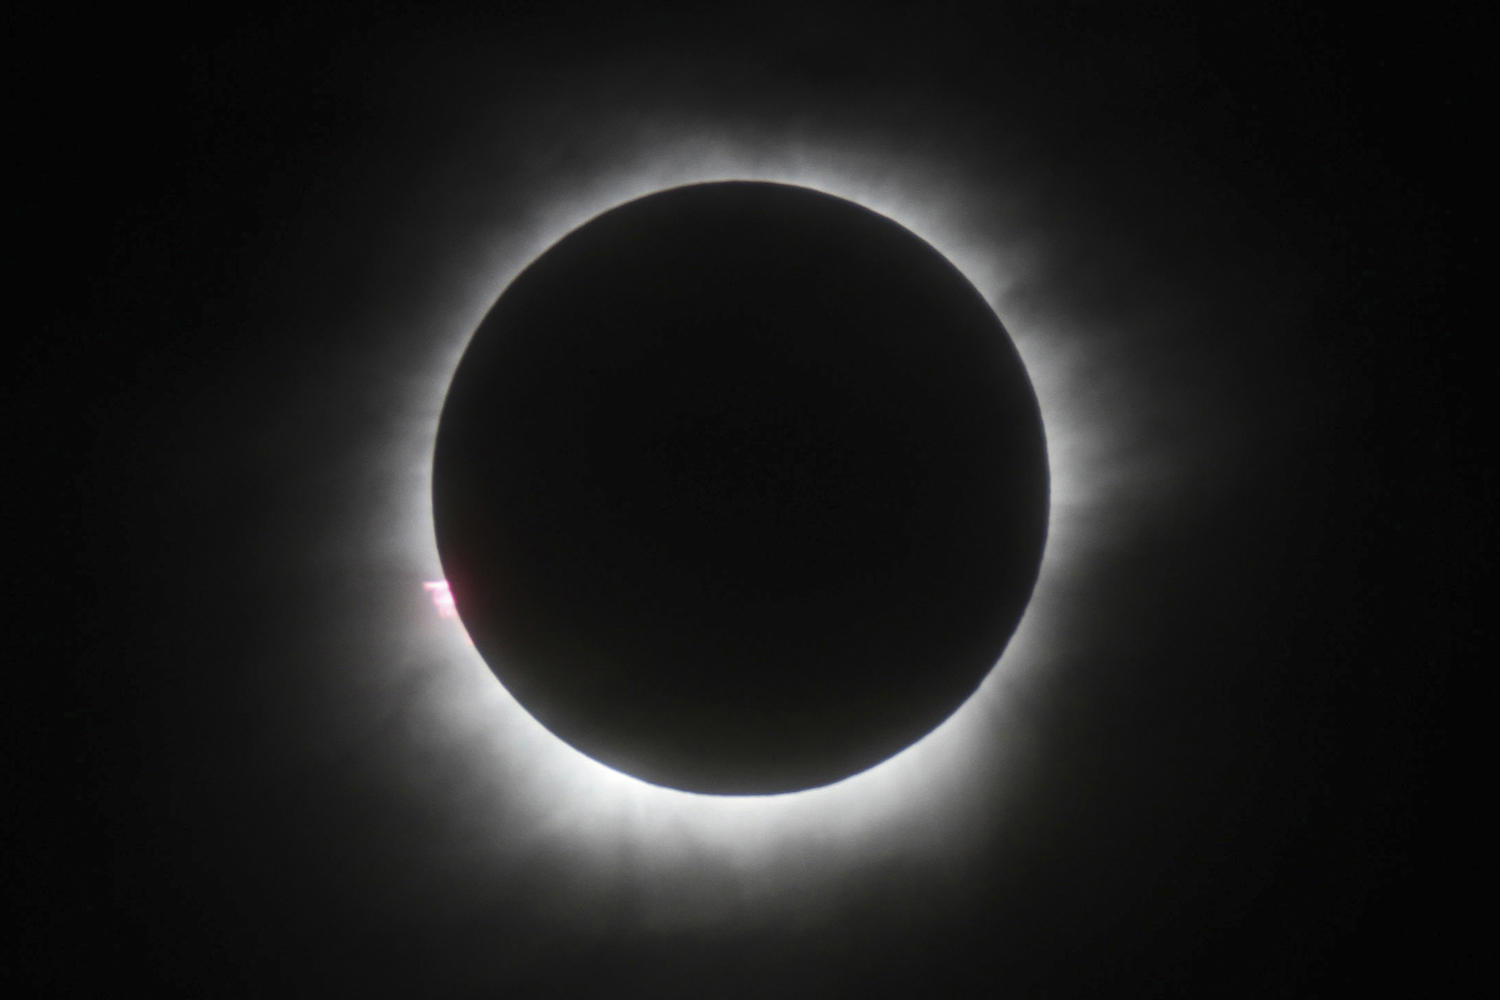 Counterfeit solar eclipse glasses are unsafe, American Astronomical Society warns